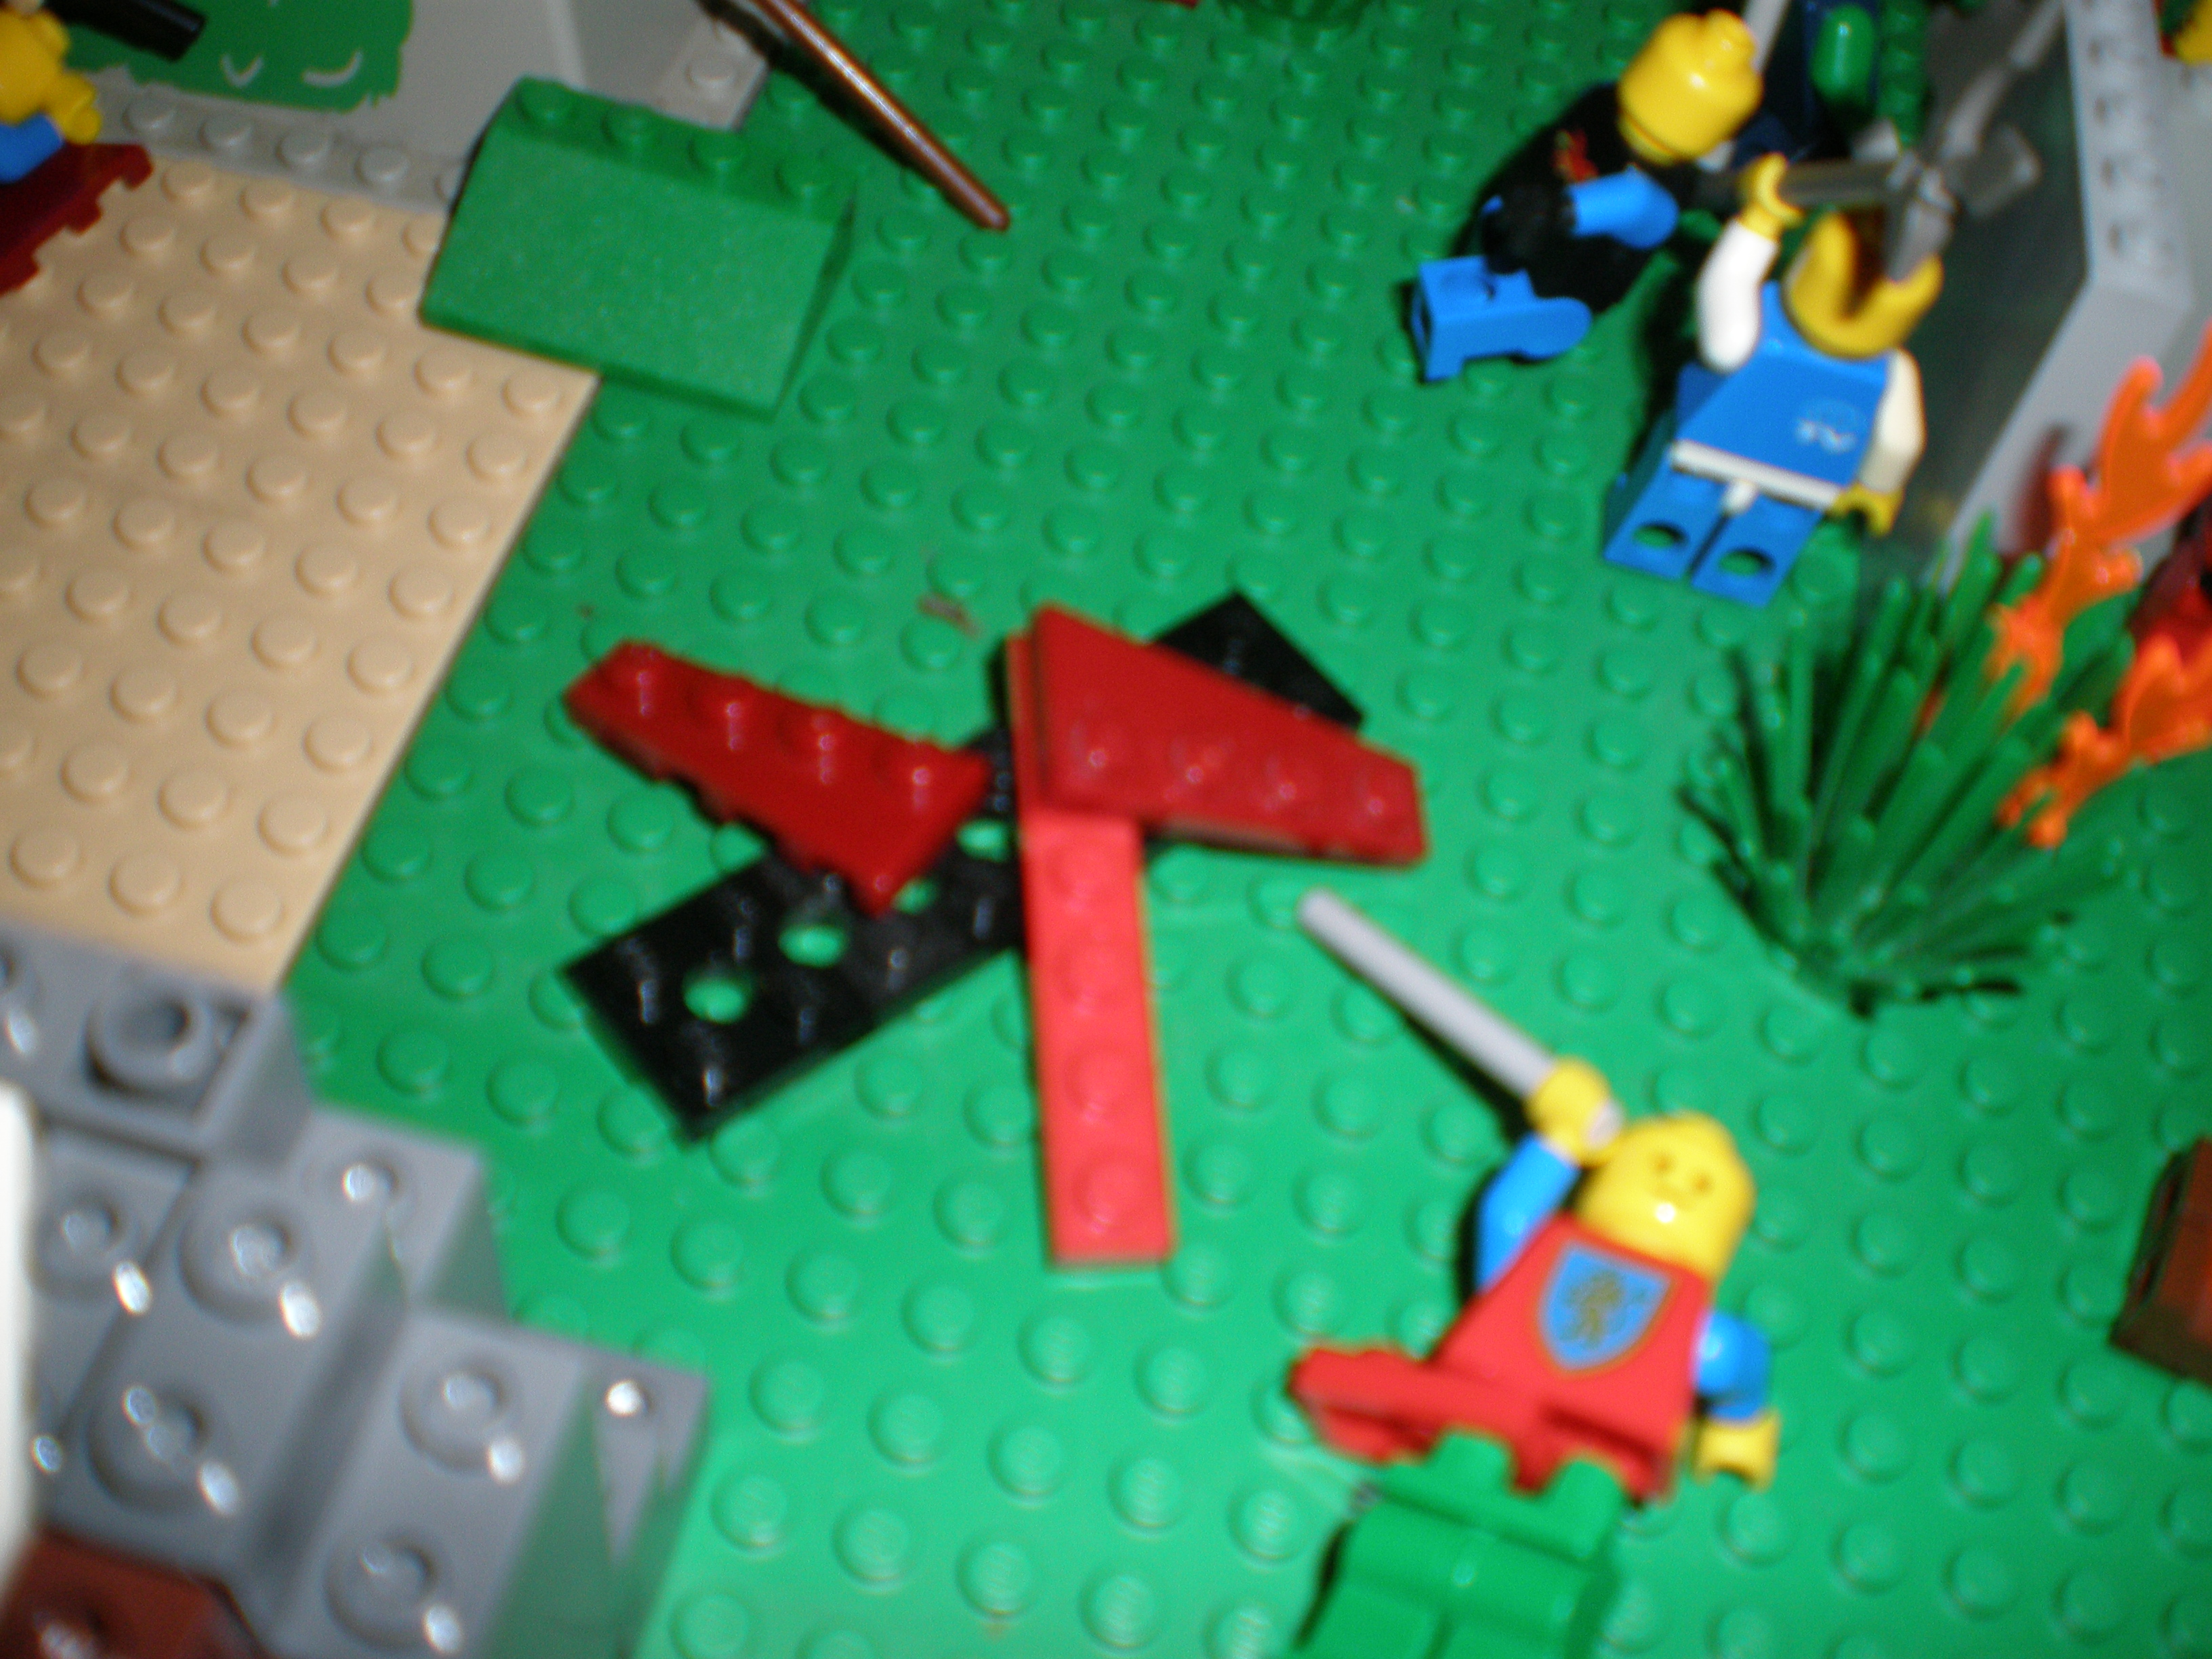 armagendon_lego_battle_009.jpg